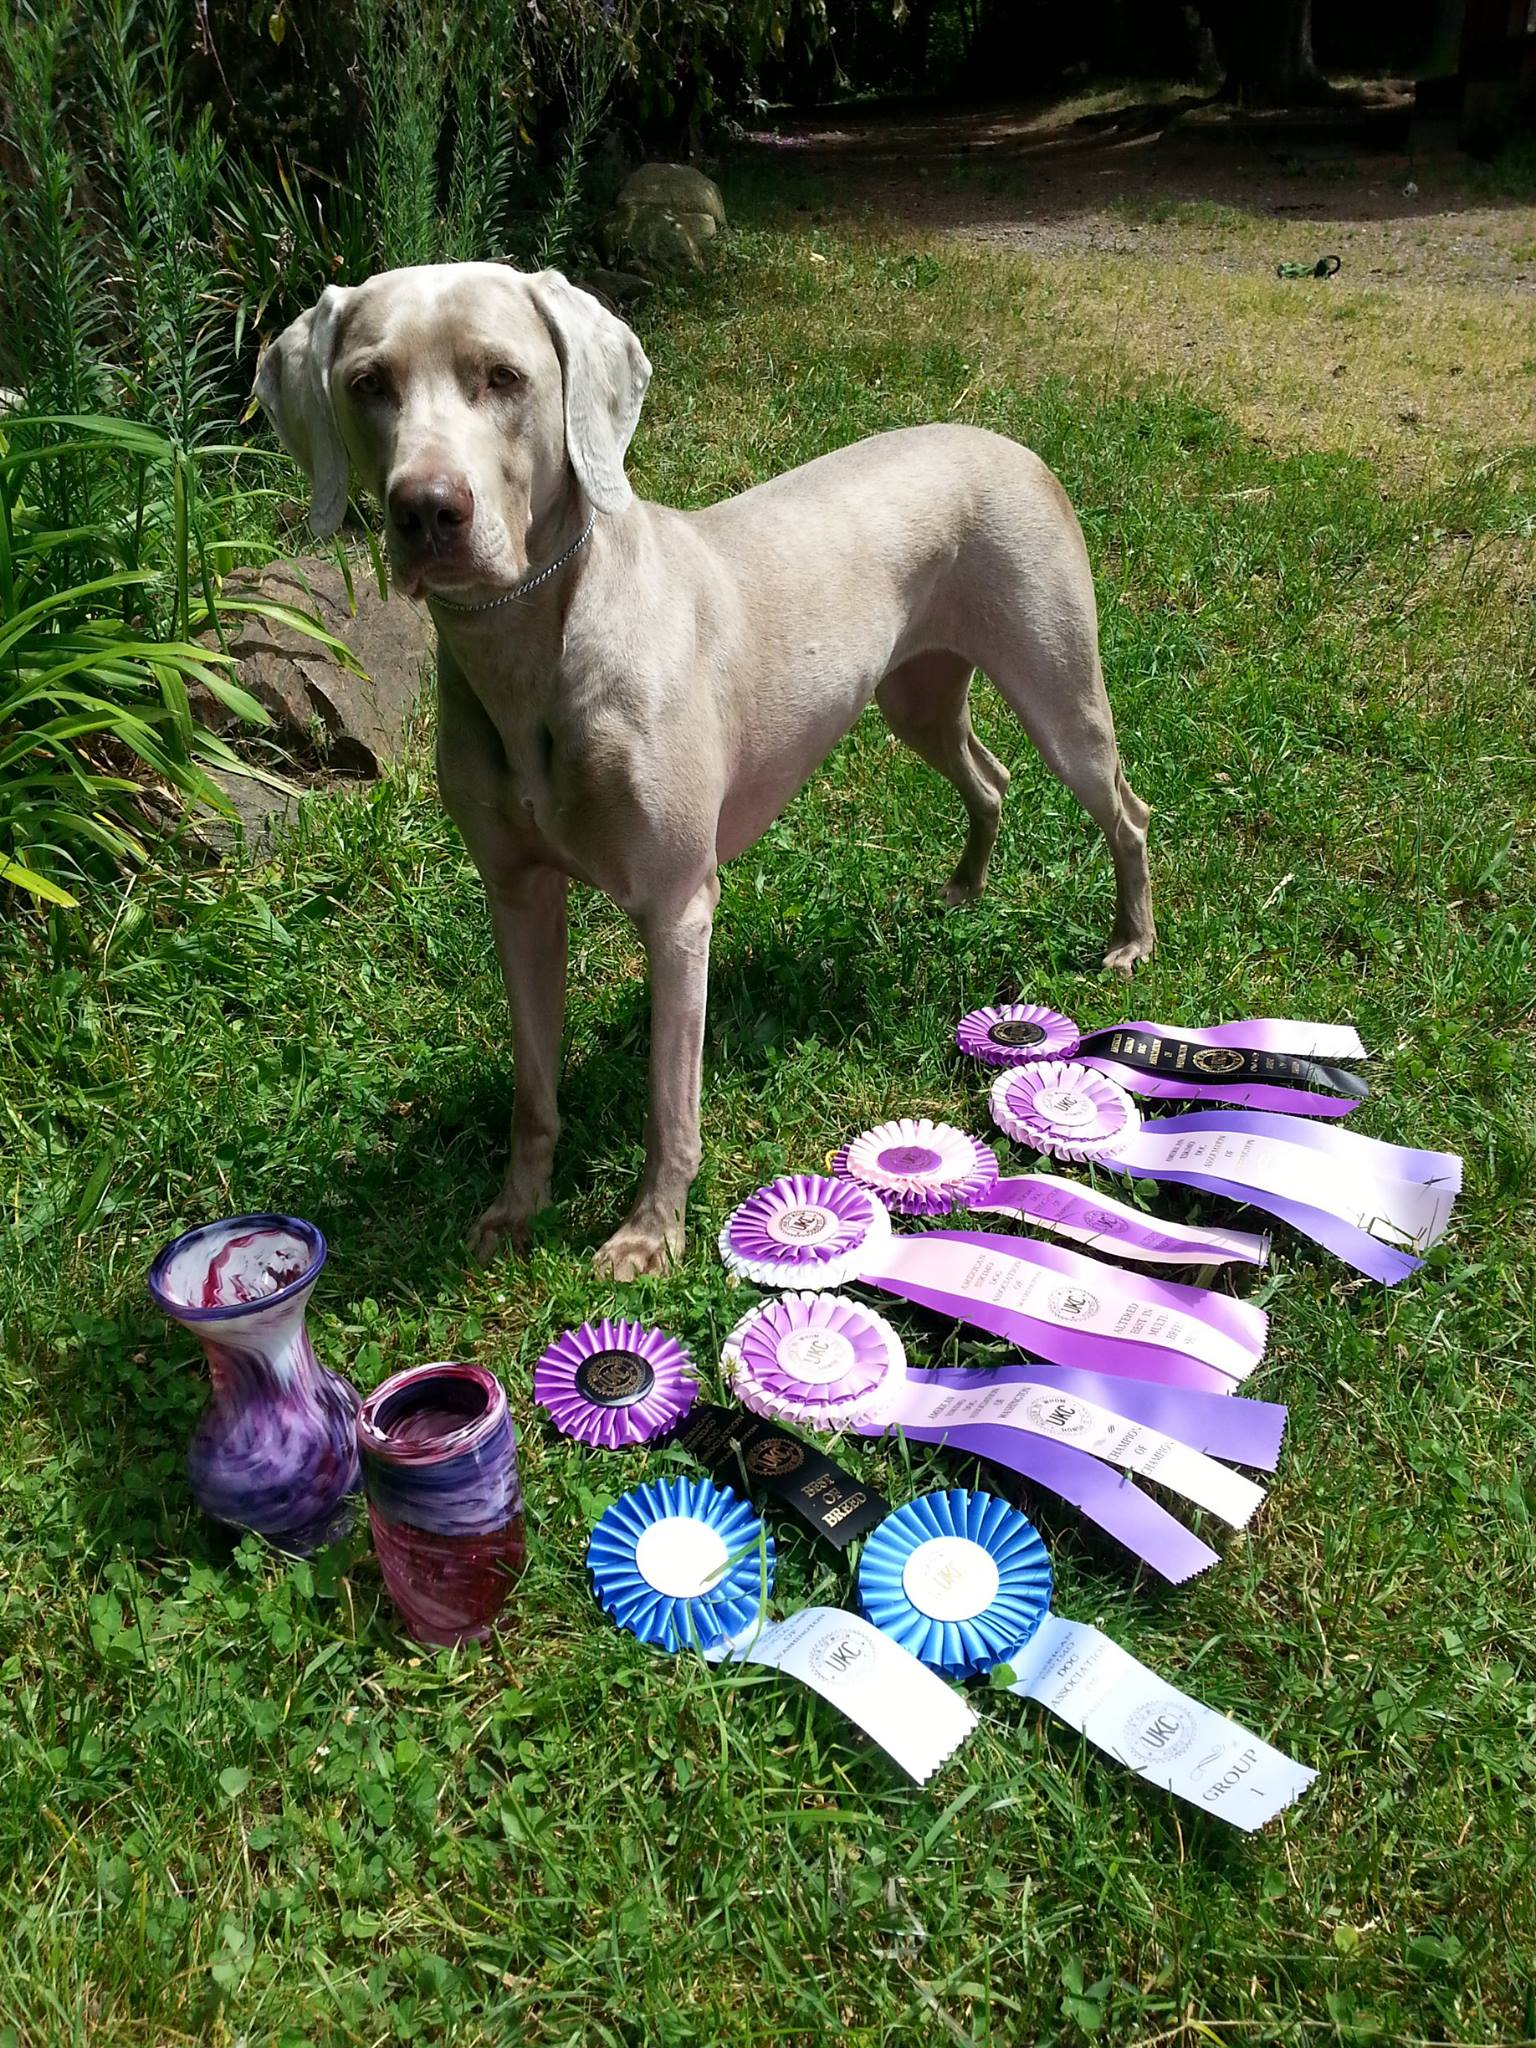 May 31, 2015 -- UKC Best-In-Show and High-In-Trial Champion Sunstar Willow of OwyheeStar, CGC, UROI, TDI